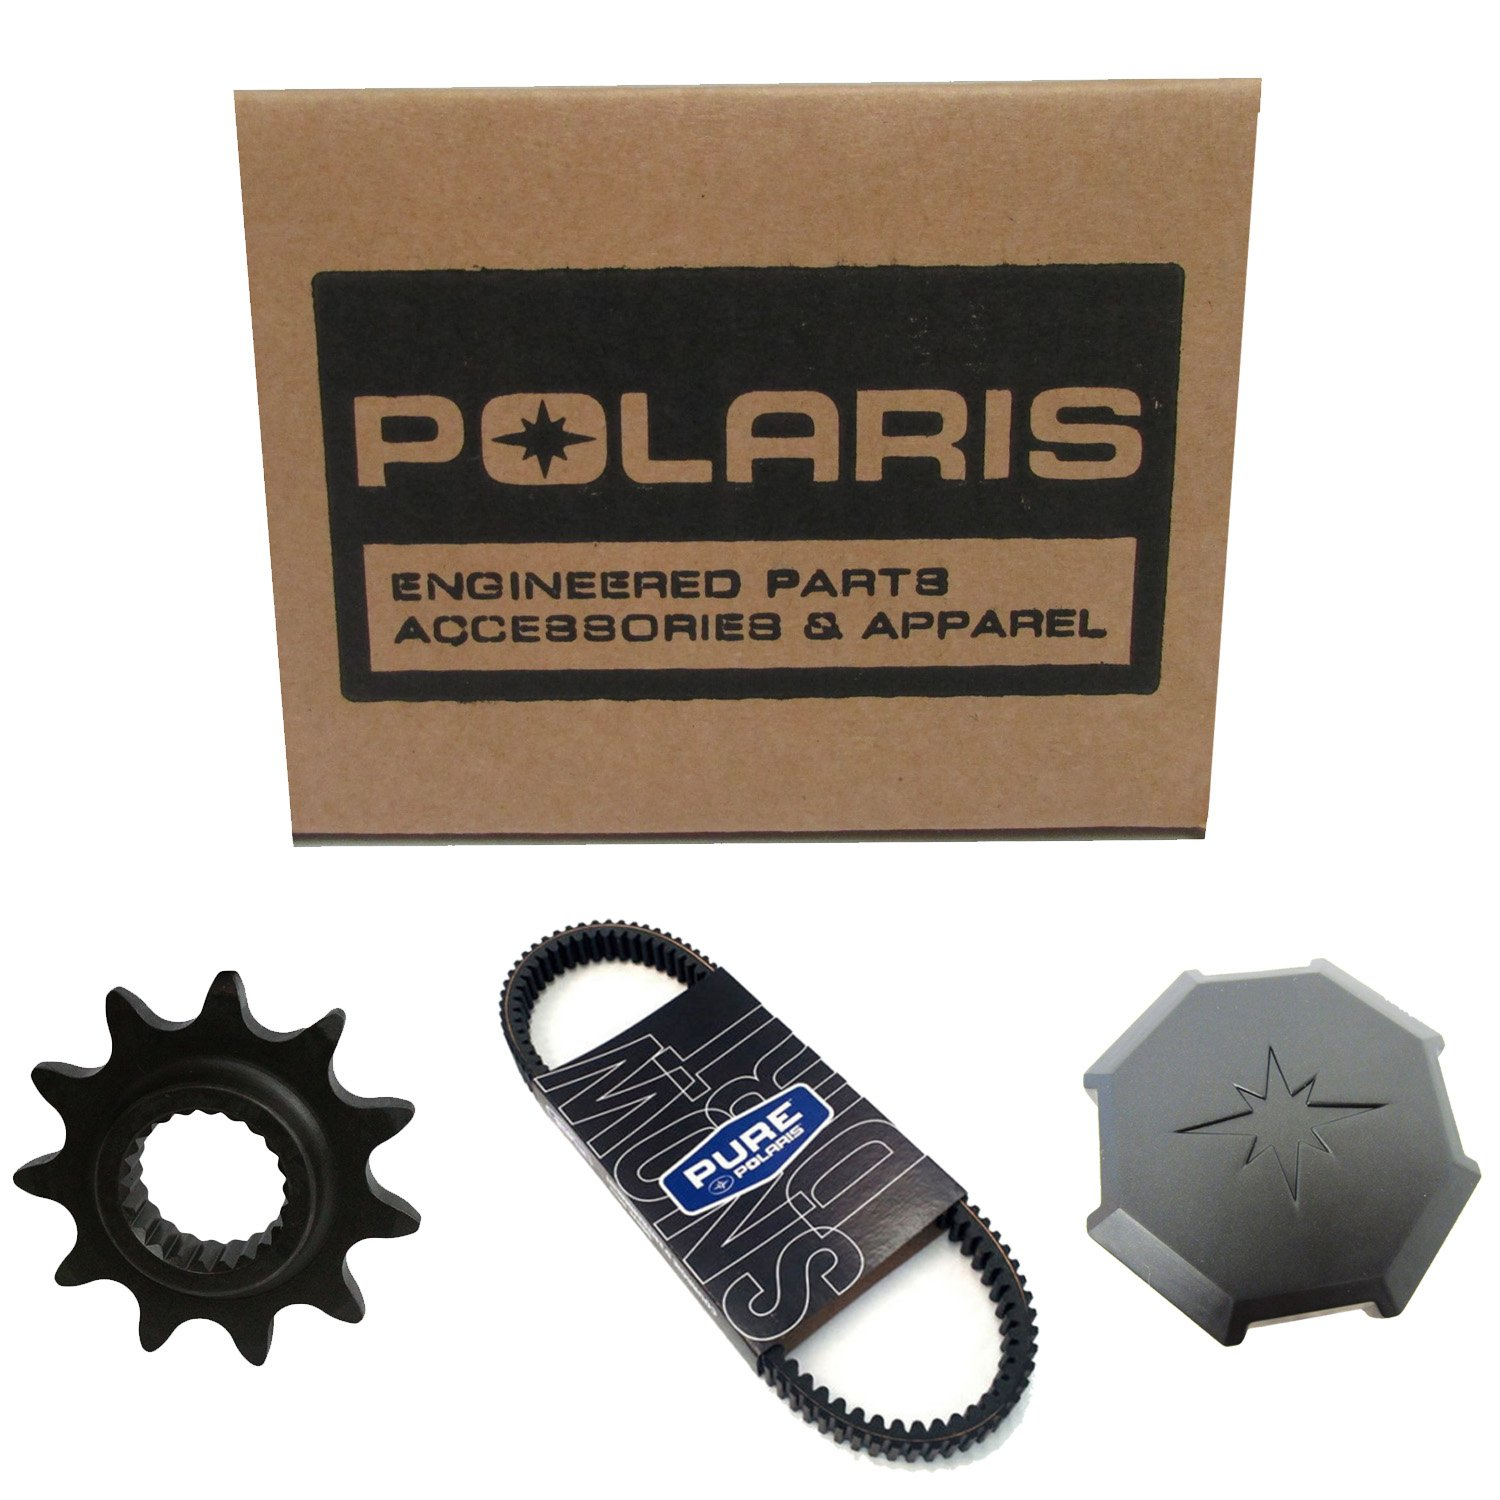 Polaris 5412048 SEAL-FLANGED,24X44X10 W/HELIX QTY 1 by Polaris